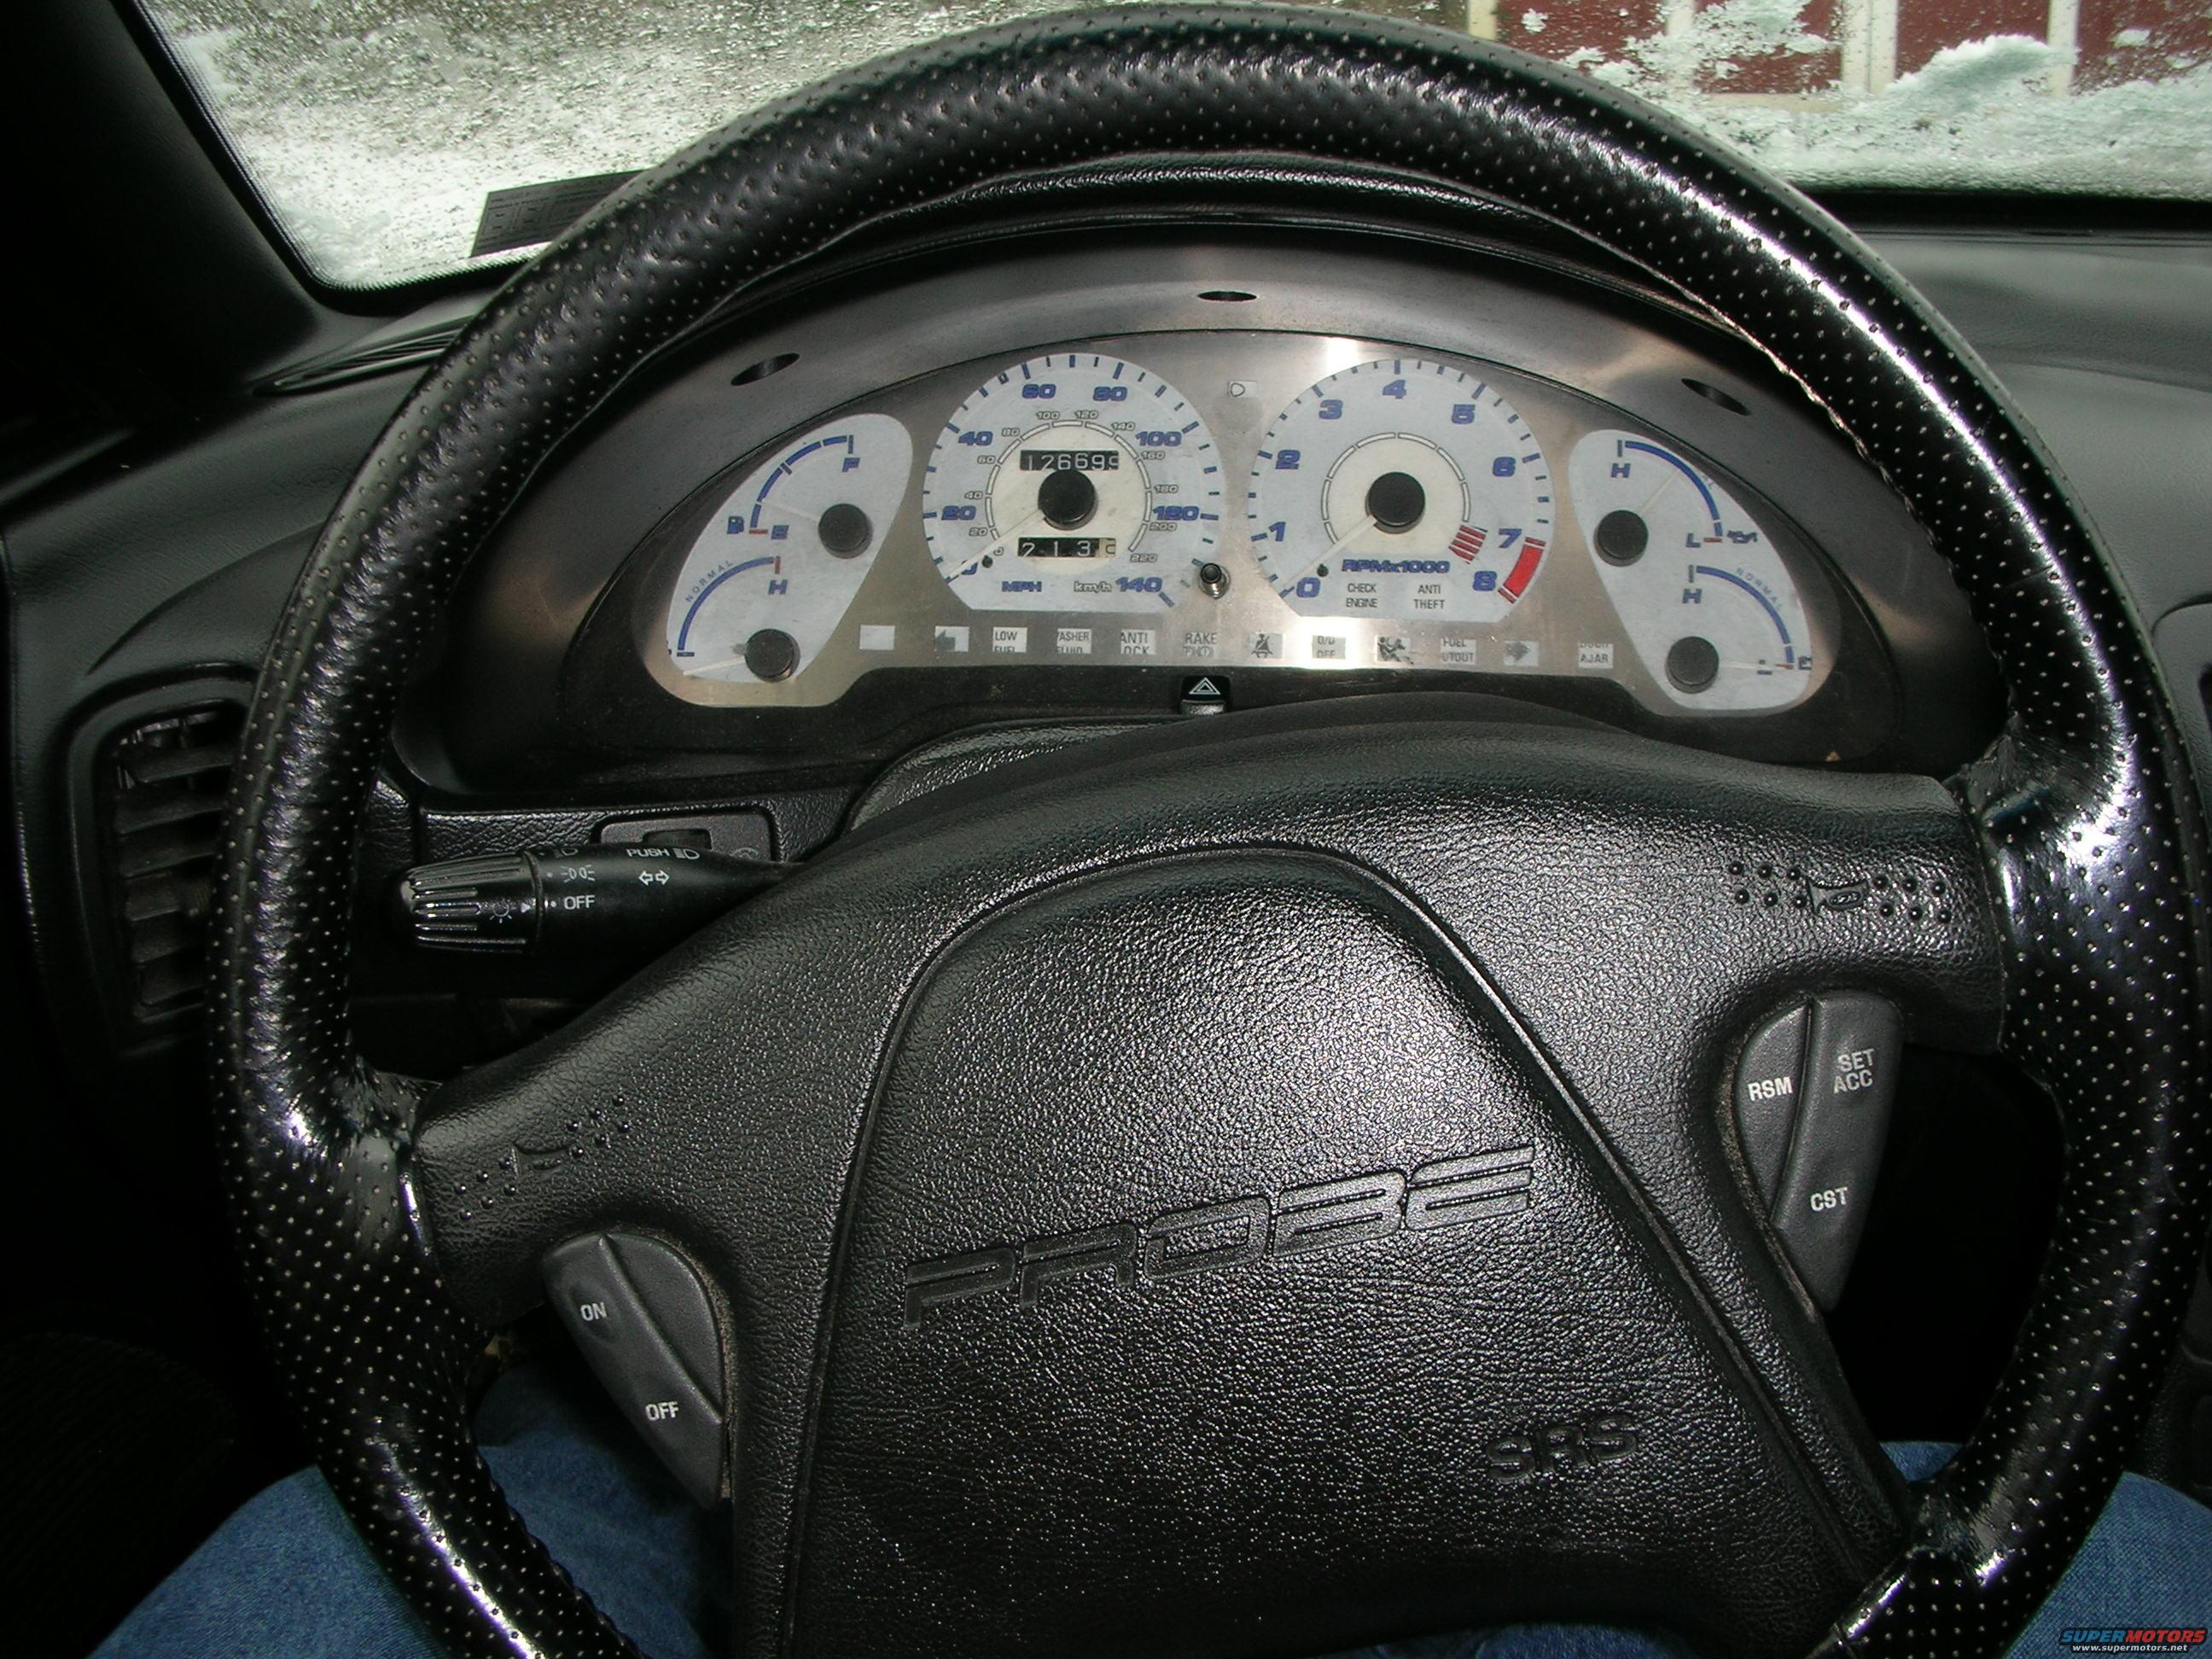 1995 Ford Probe 95 Interior Picture